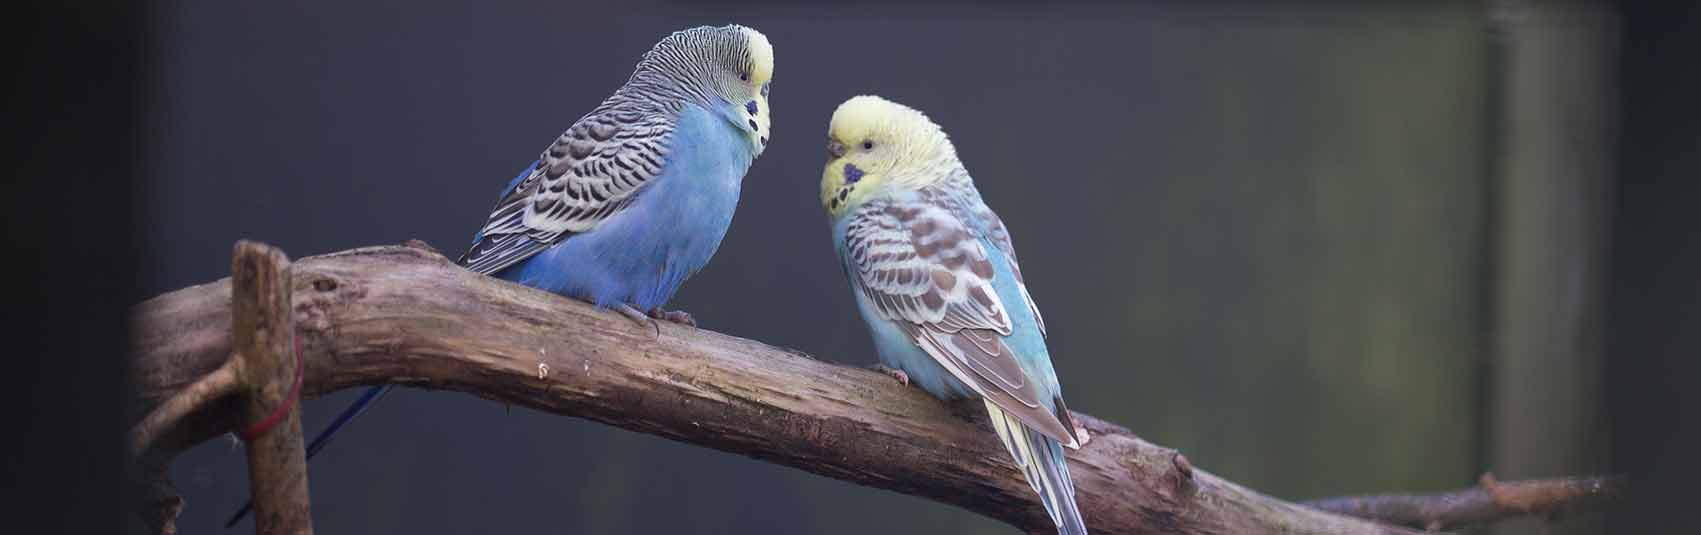 Parakeets at Ferne Animal Sanctuary